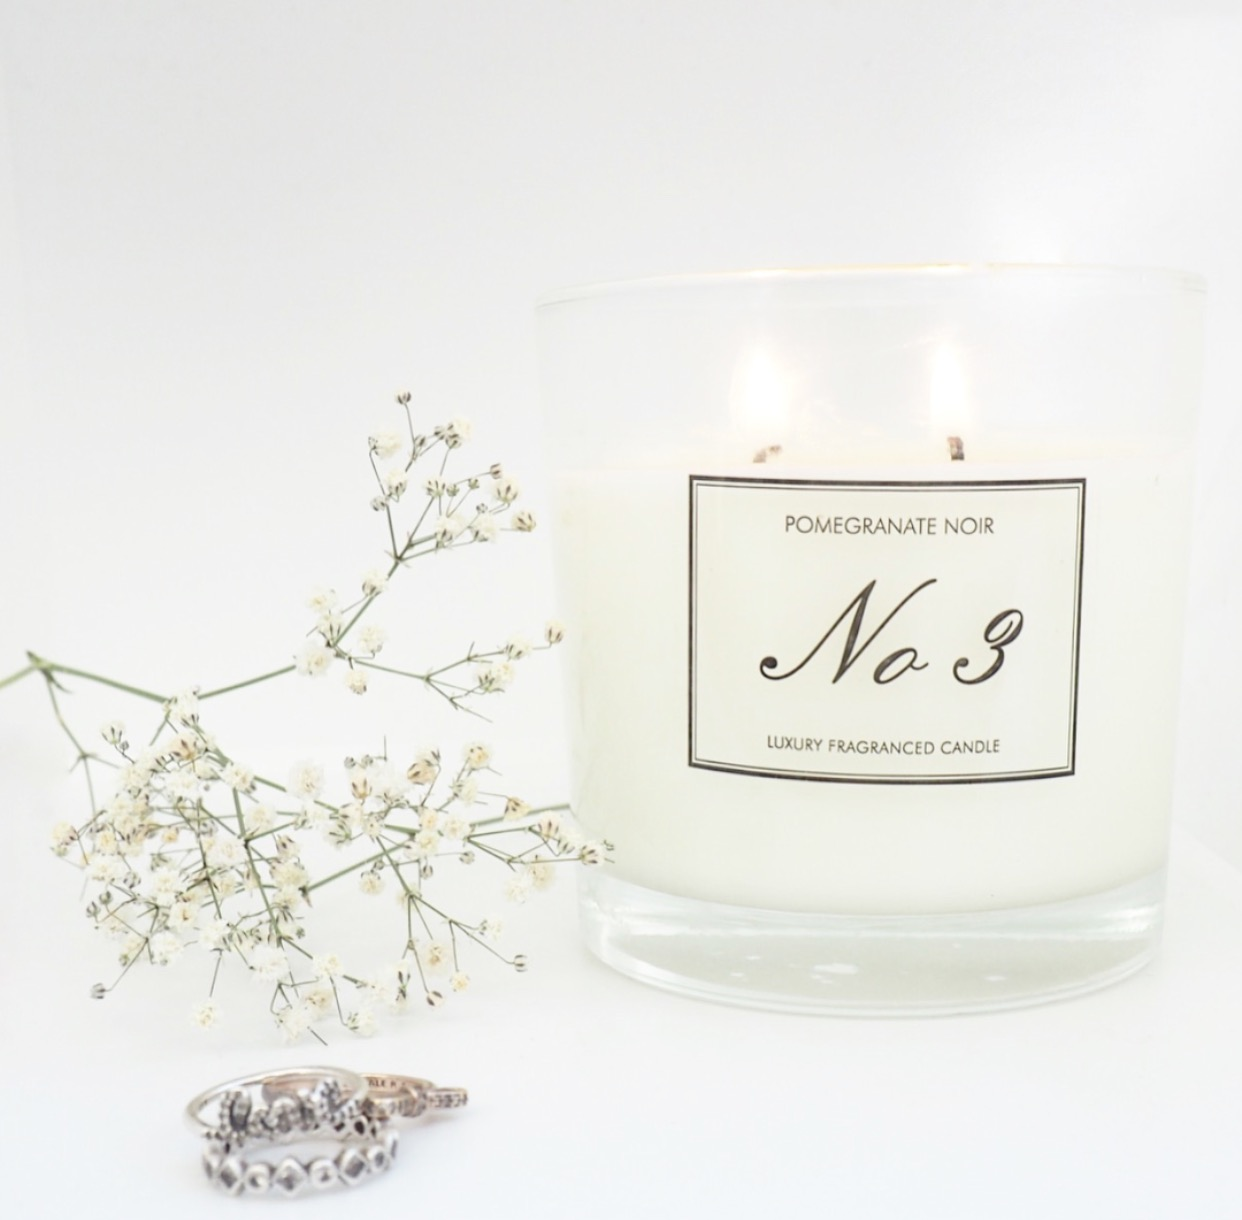 Aldi No 3 Pomegranate Noir Luxury Fragranced Candle Review